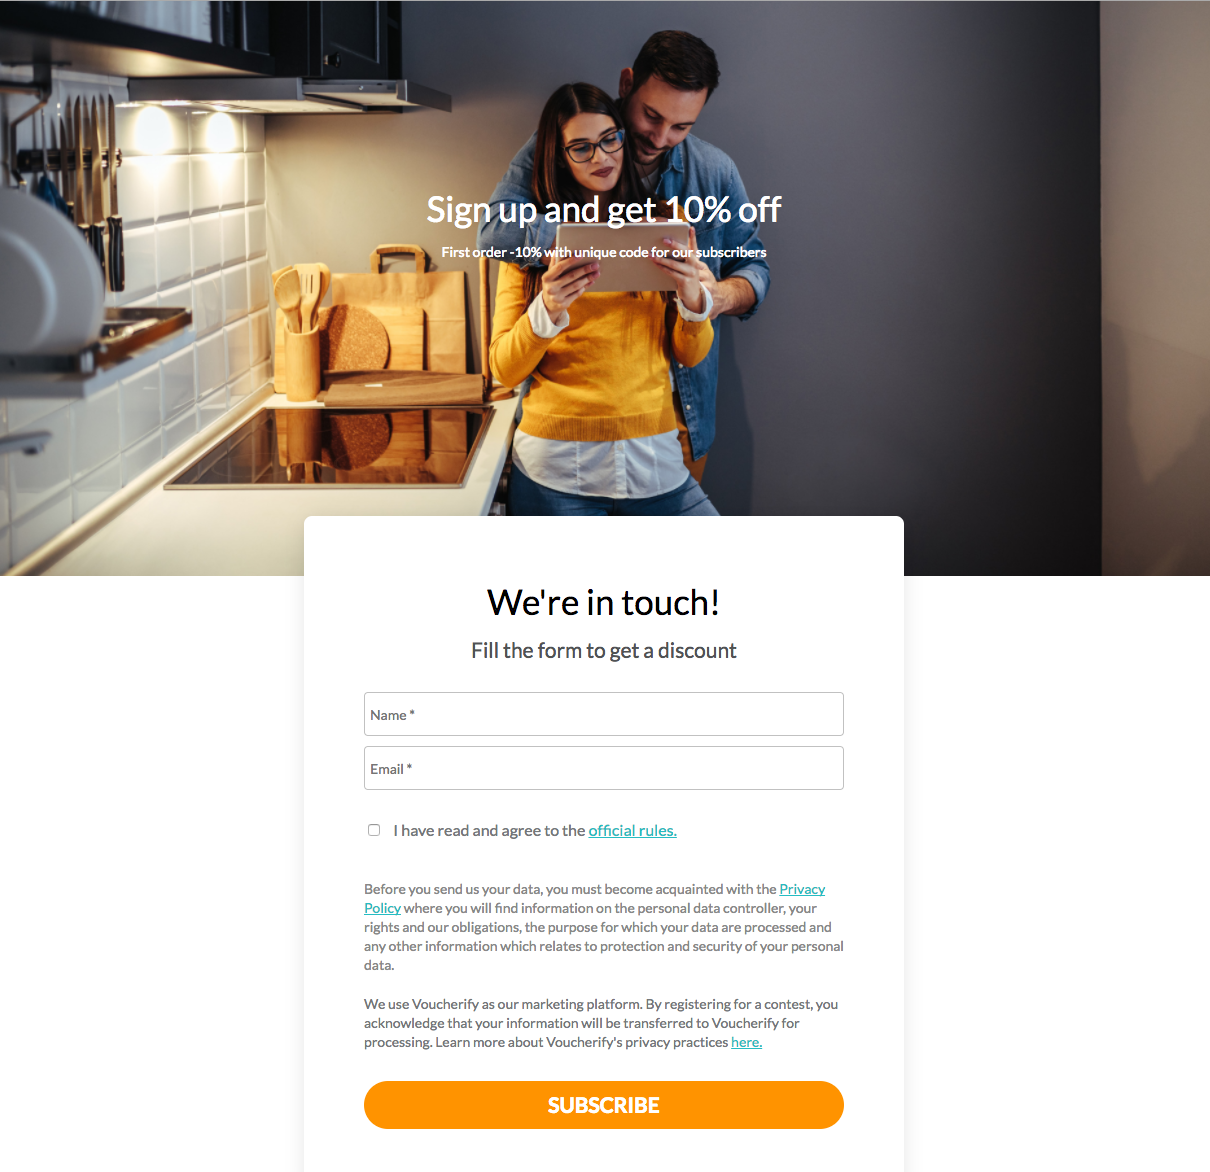 Voucherify landing page customised according to brand guidelines